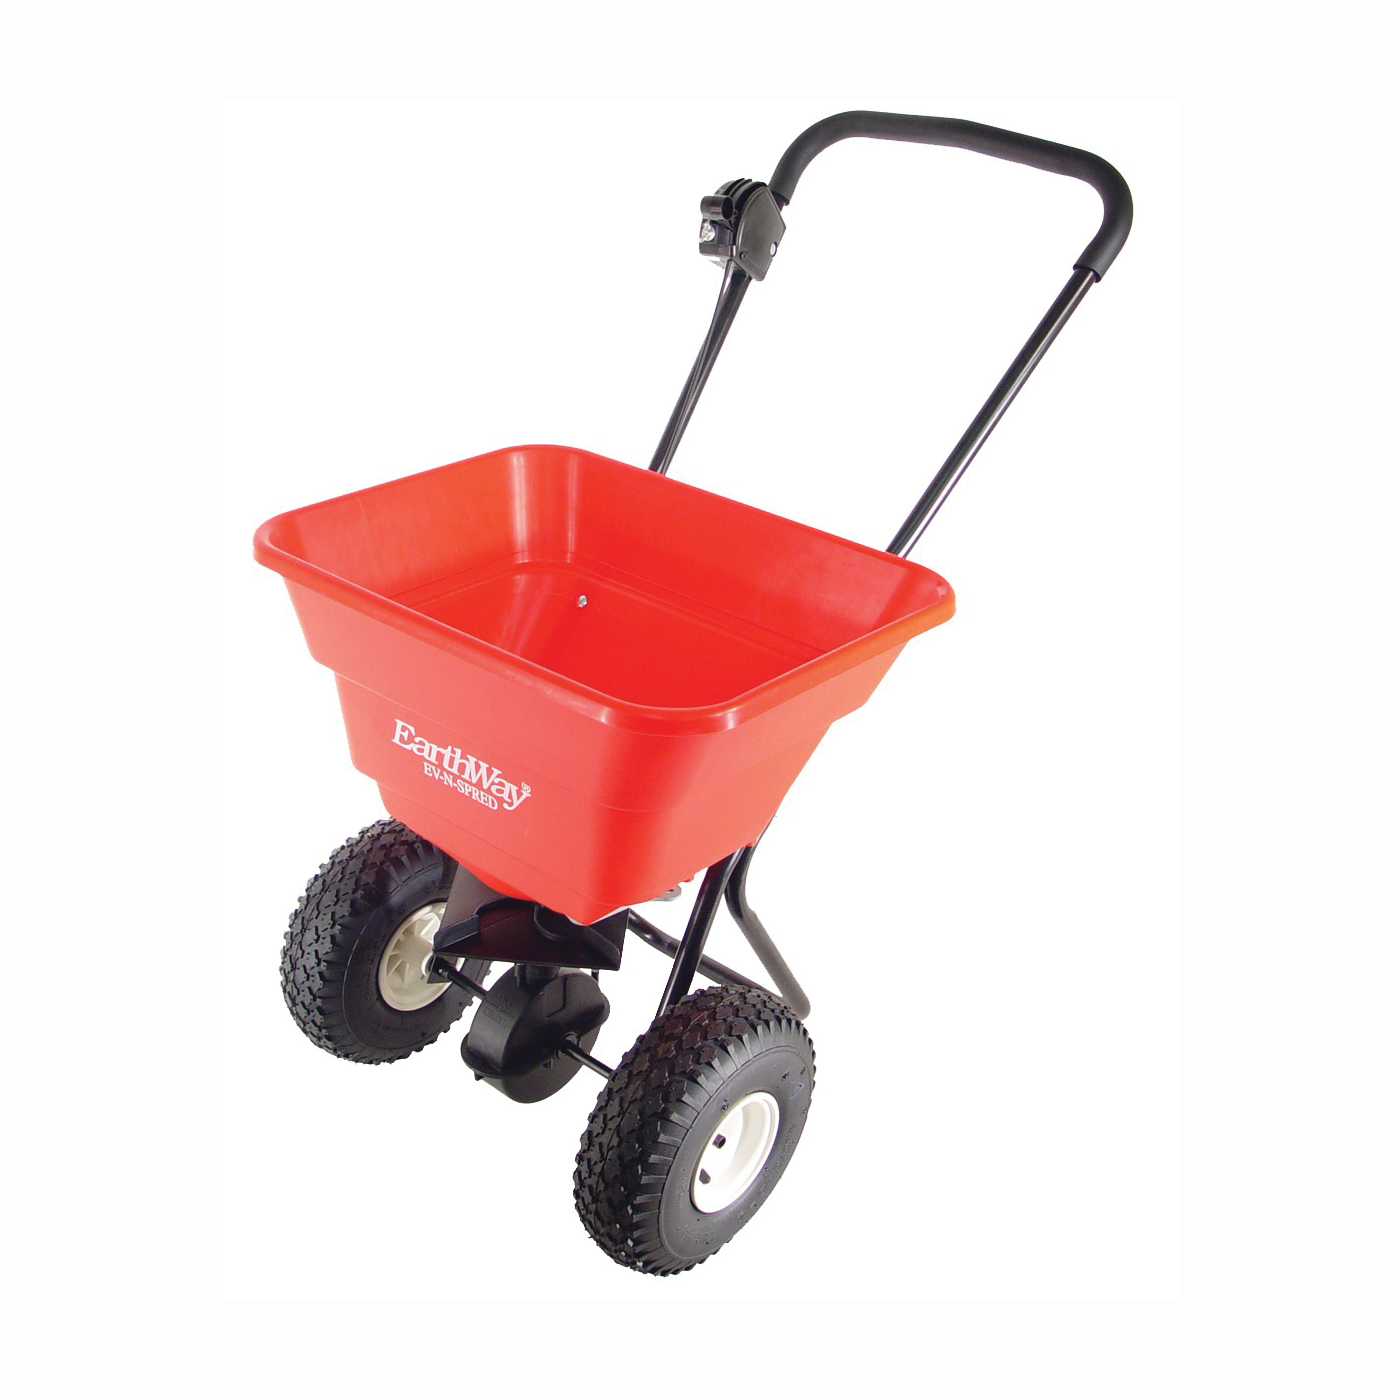 Picture of EarthWay 2050P Broadcast Spreader, 12 ft W Spread, 80 lb Capacity, Poly Hopper, Pneumatic Wheel